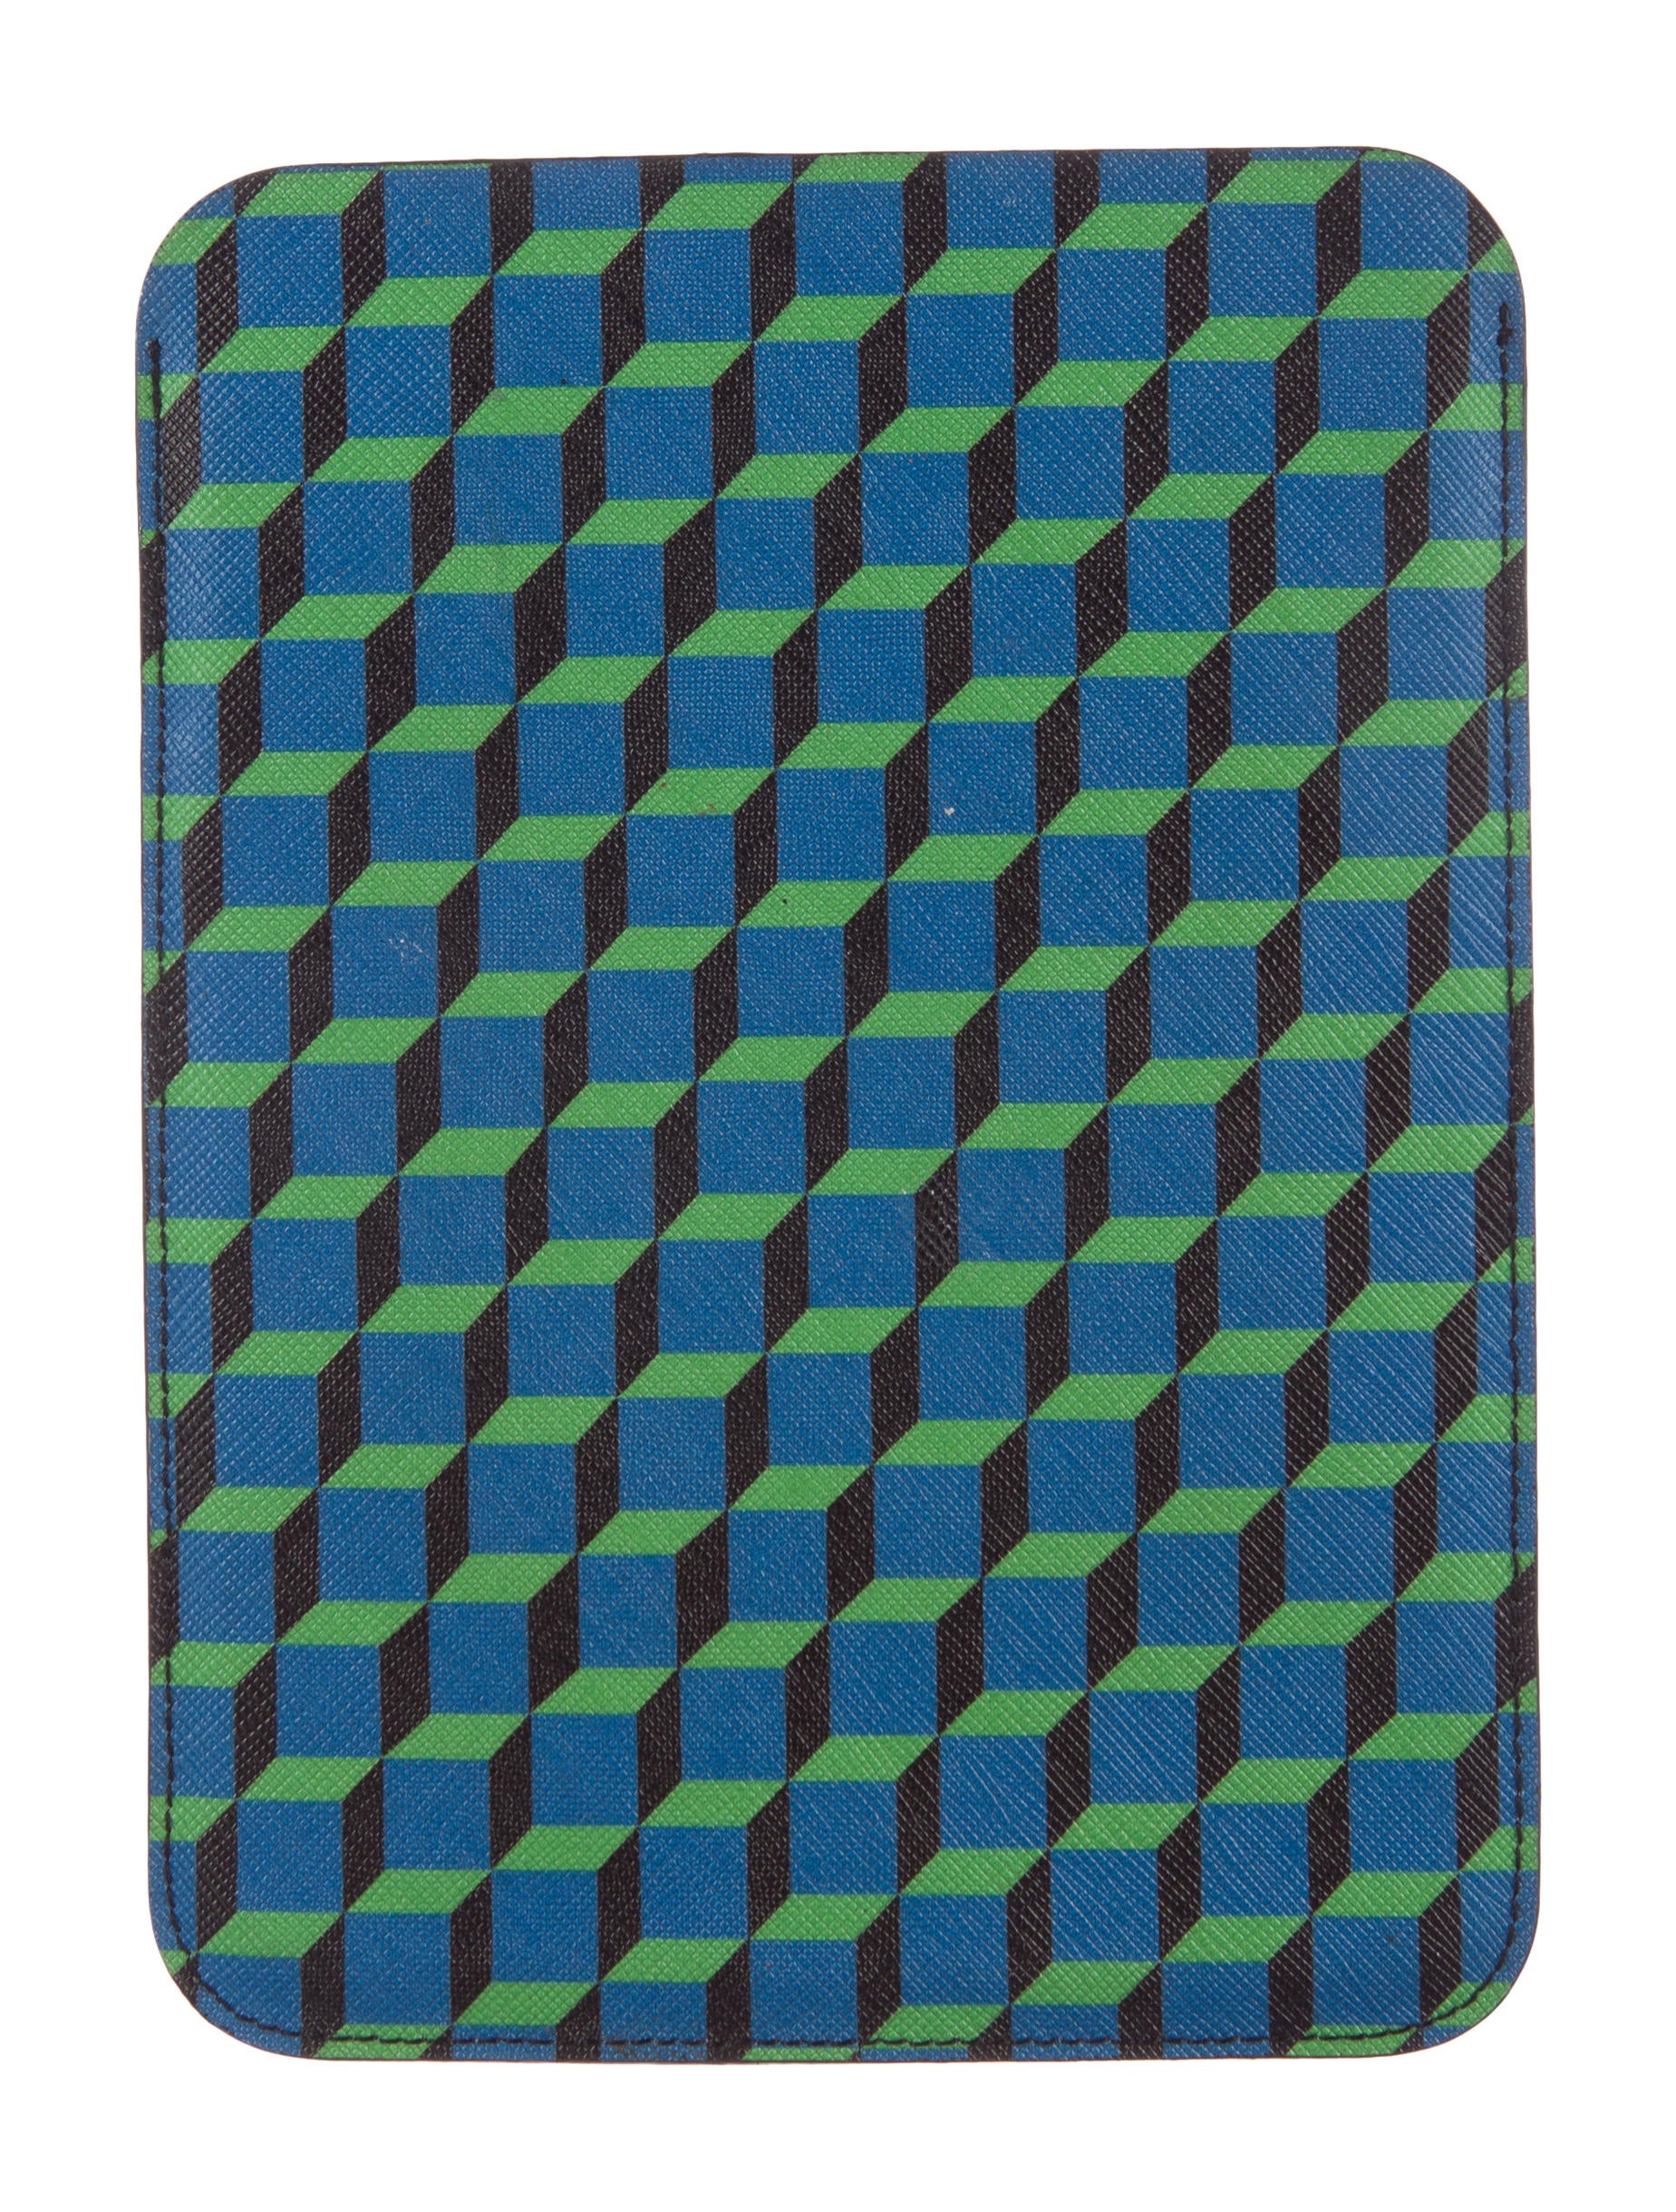 Pierre Hardy Abstract Printed Tablet Case Accessories